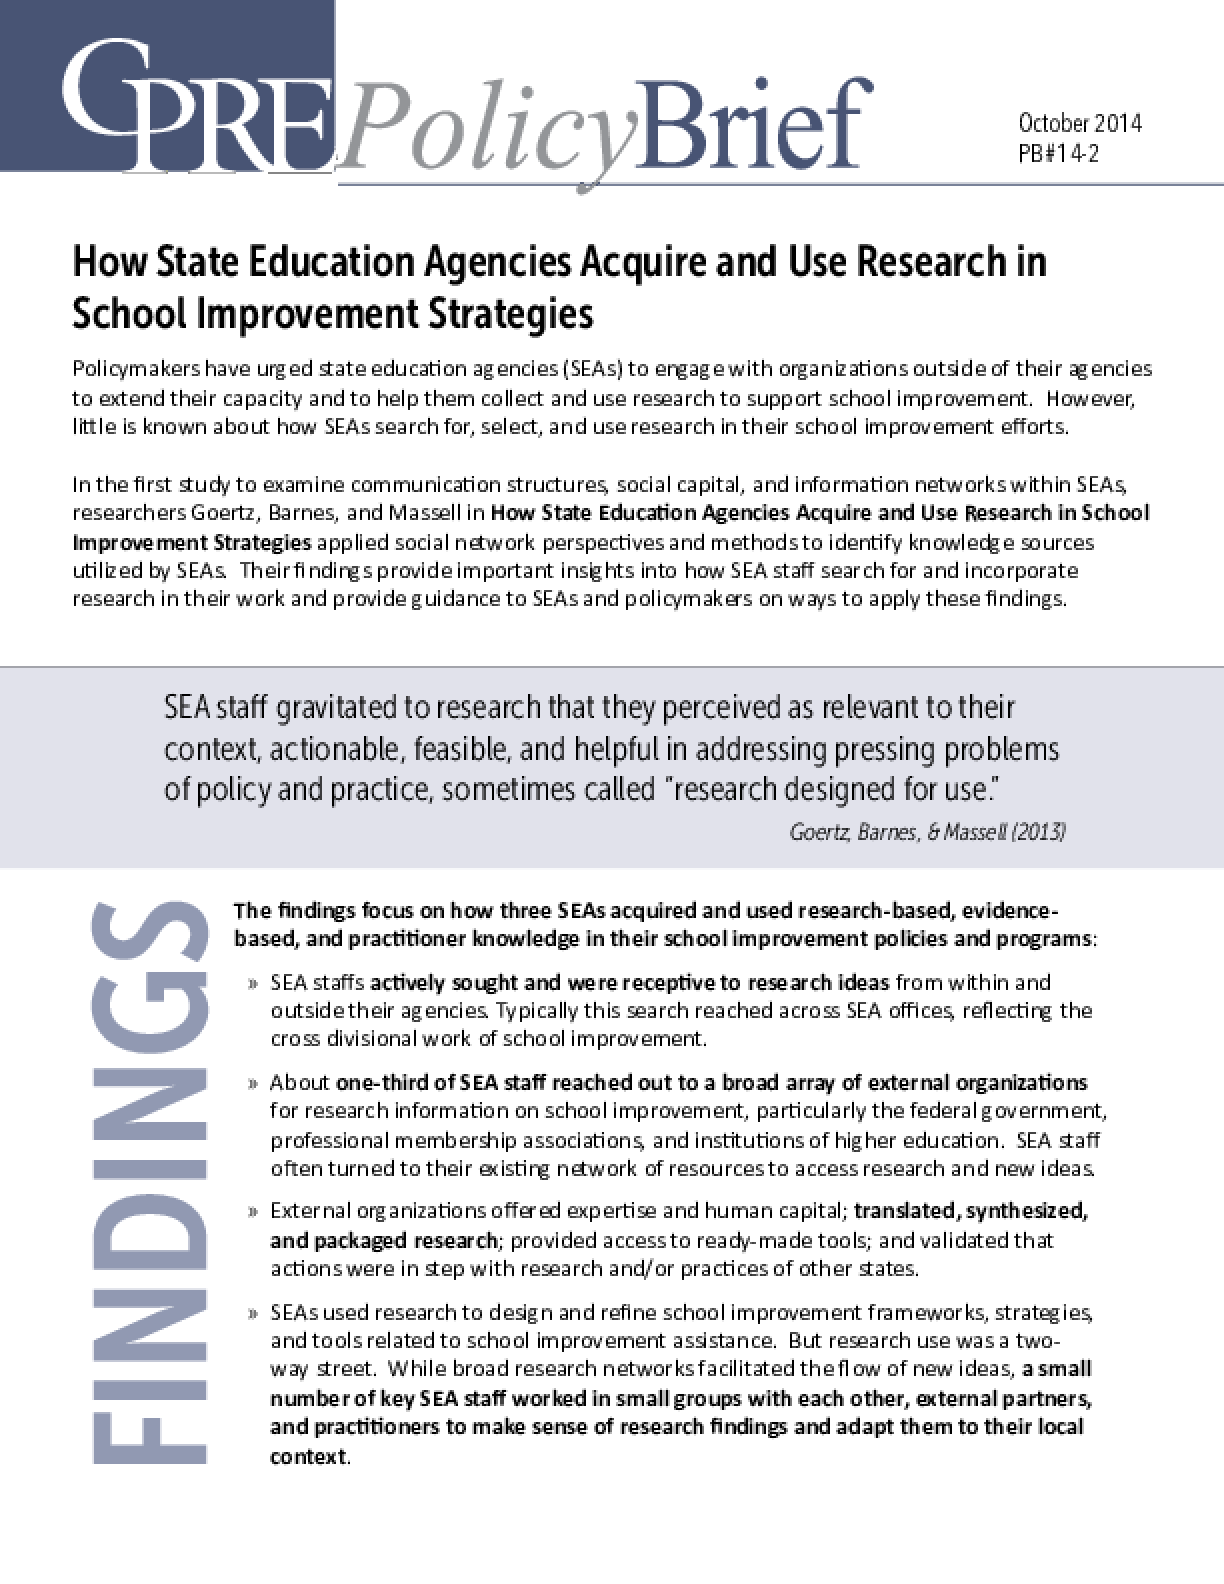 How State Education Agencies Acquire and Use Research in School Improvement Strategies, 2014